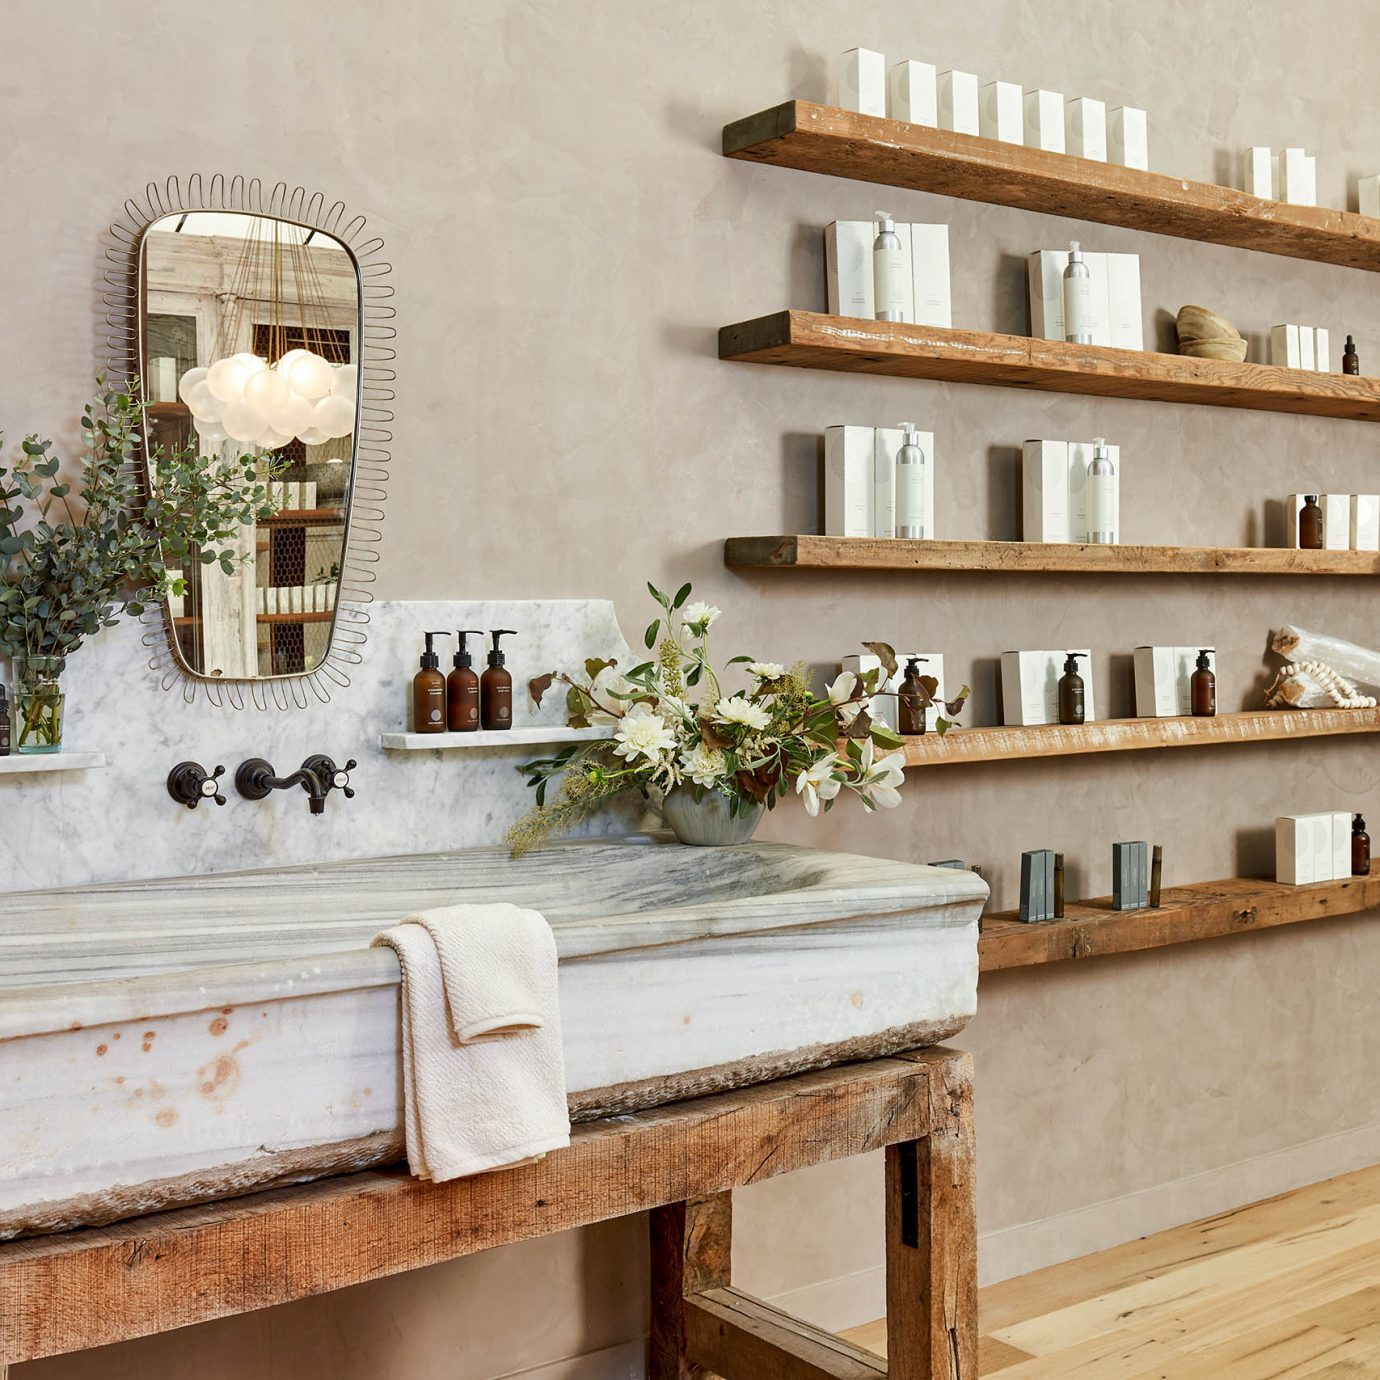 True Botanicals SF store